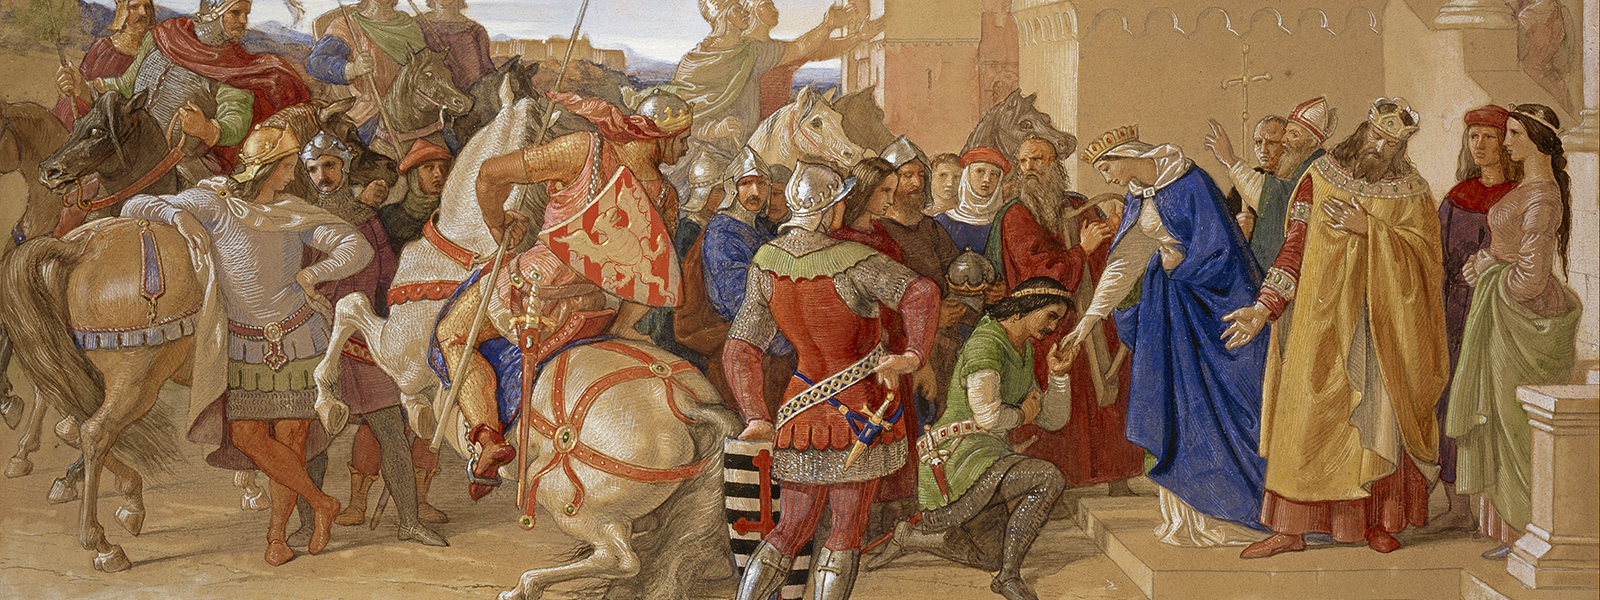 arthurian characters and groups